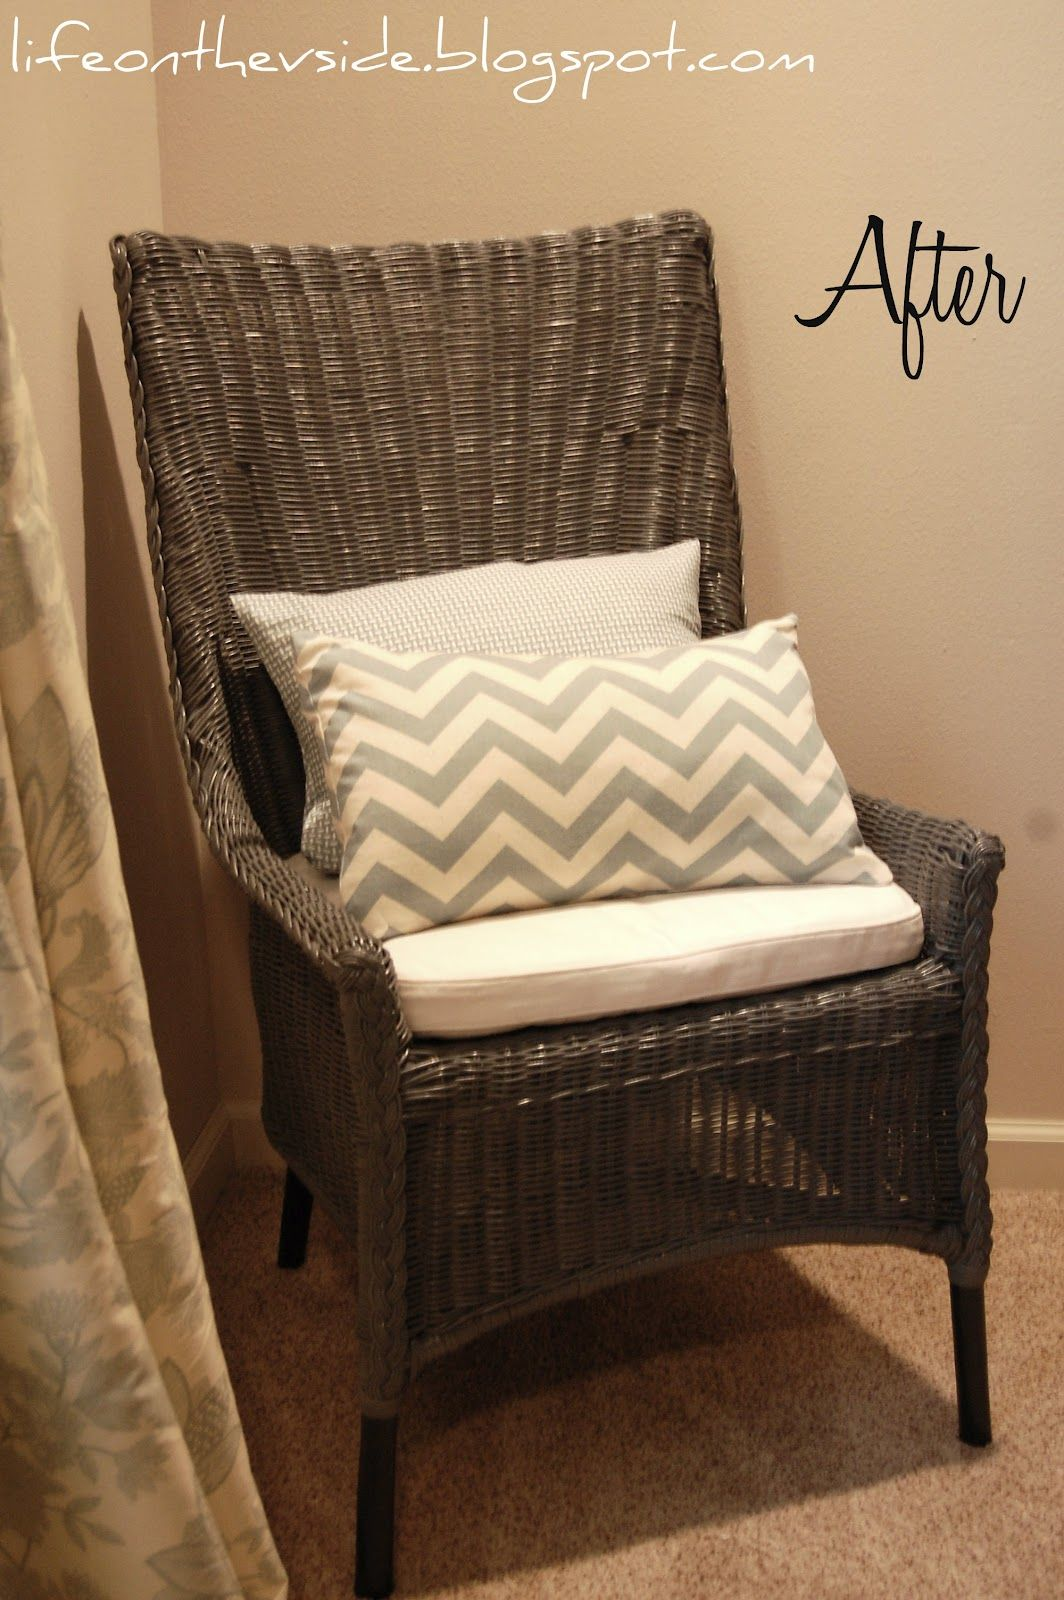 Wicker chair makeover rustoleum granite minwax dark walnut on the legs